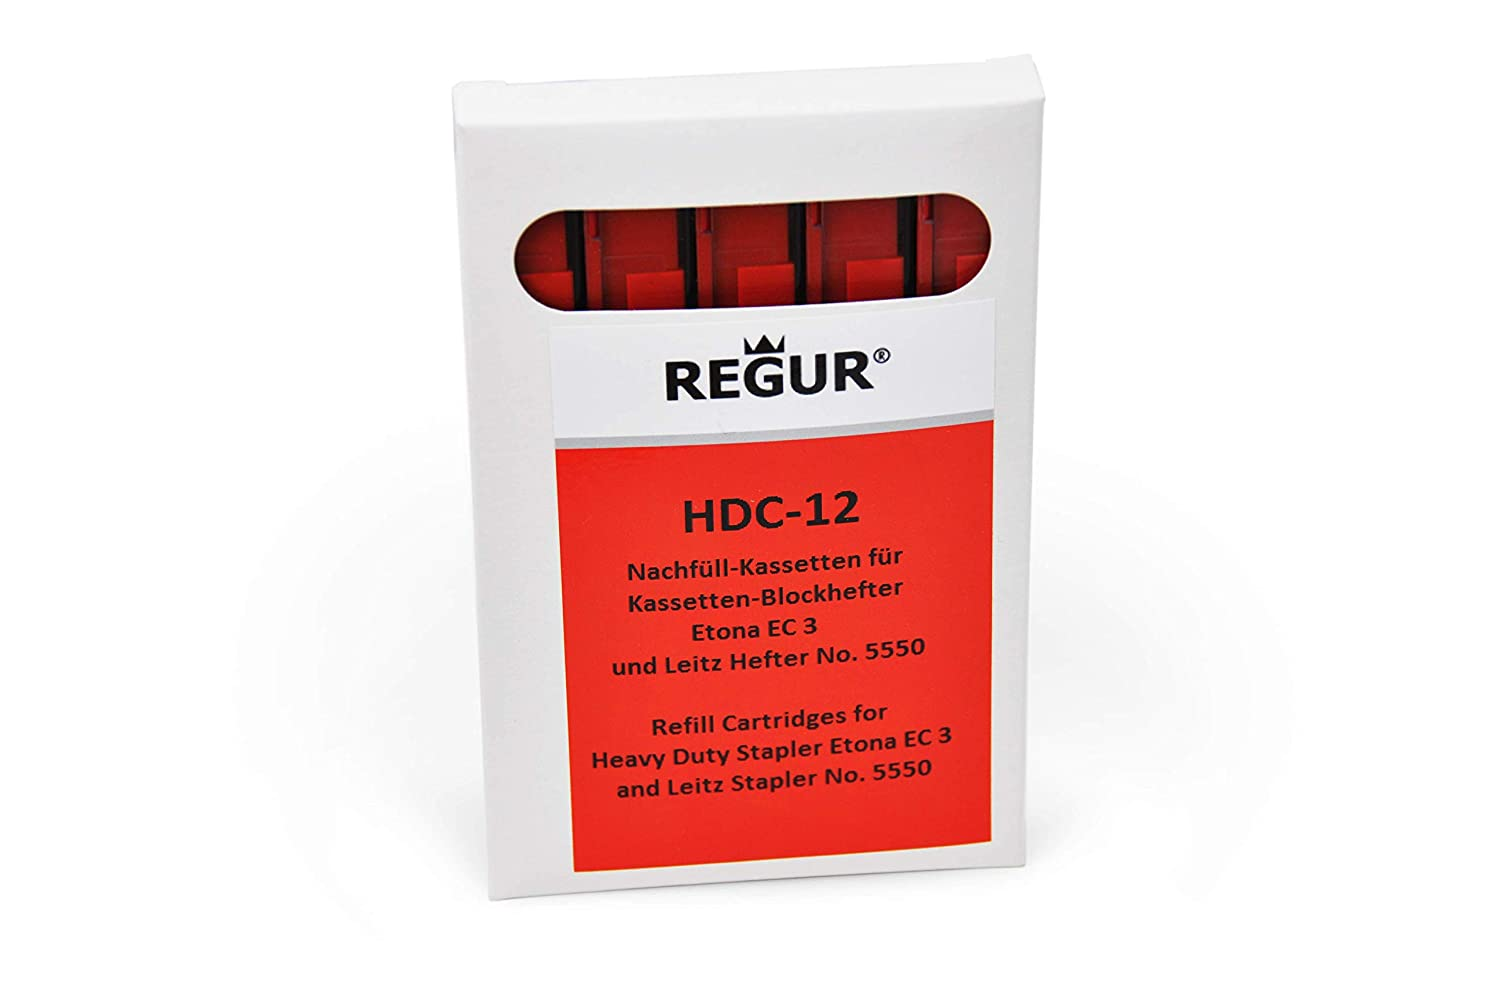 REGUR HDC 12 Red Staple Cassette Refills (55-80 Sheets ) for Etona EC3 Dr. Gold & Co.